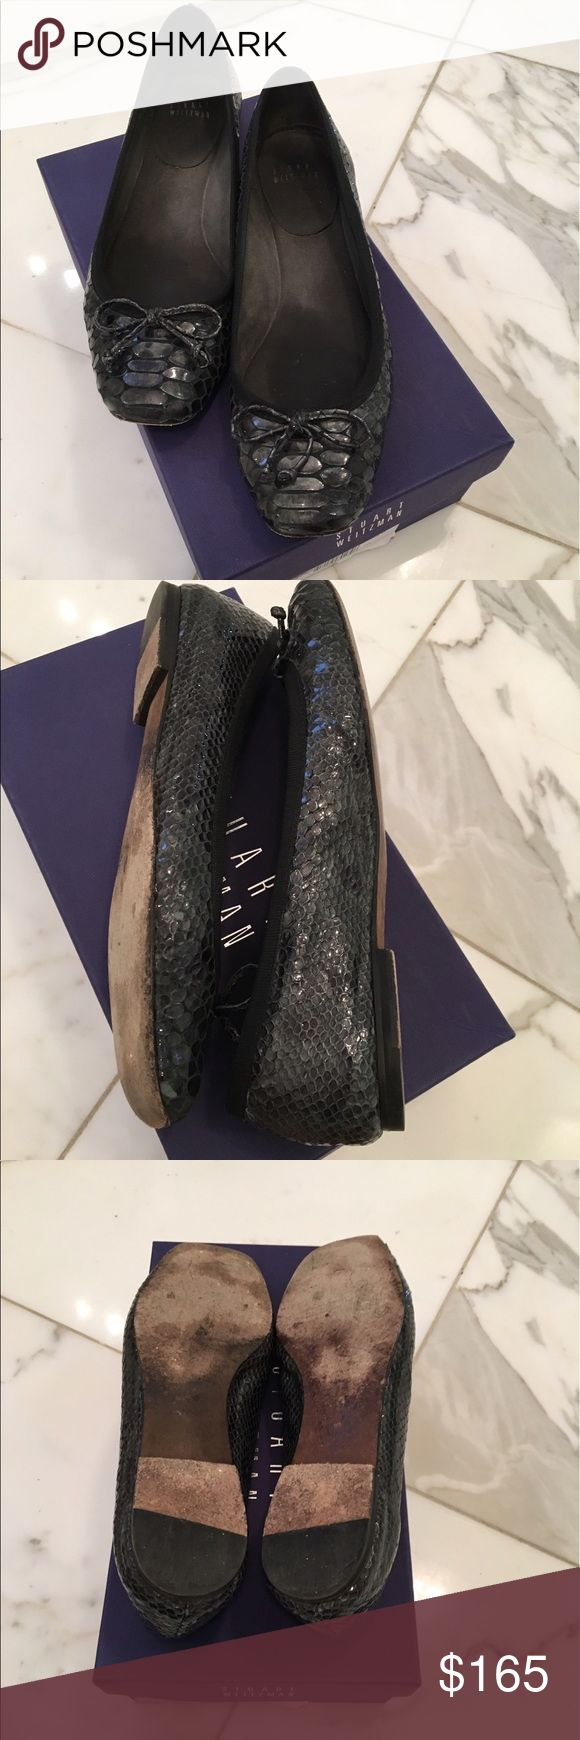 """Stuart Weitzman Ballet Flat Stuart Weitzman smoke crystal snake-embossed leather ballerina flat. 0.3"""" flat covered heel. Square toe with bow. Slip-on style. Padded footbed. Leather outsole. made in Spain. Stuart Weitzman Shoes Flats & Loafers"""